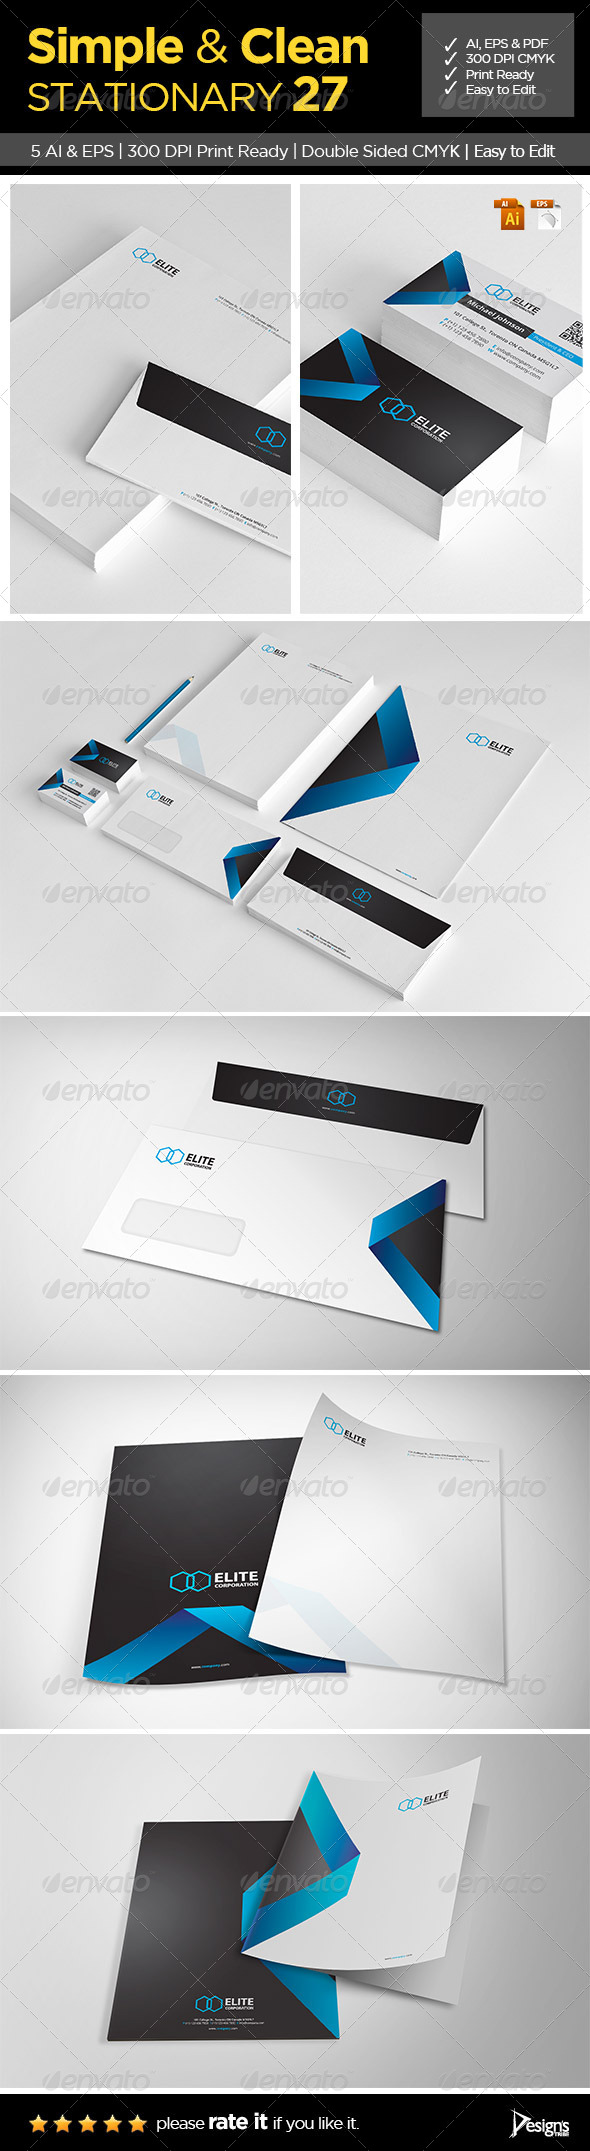 GraphicRiver Simple and Clean Stationary 27 7161840